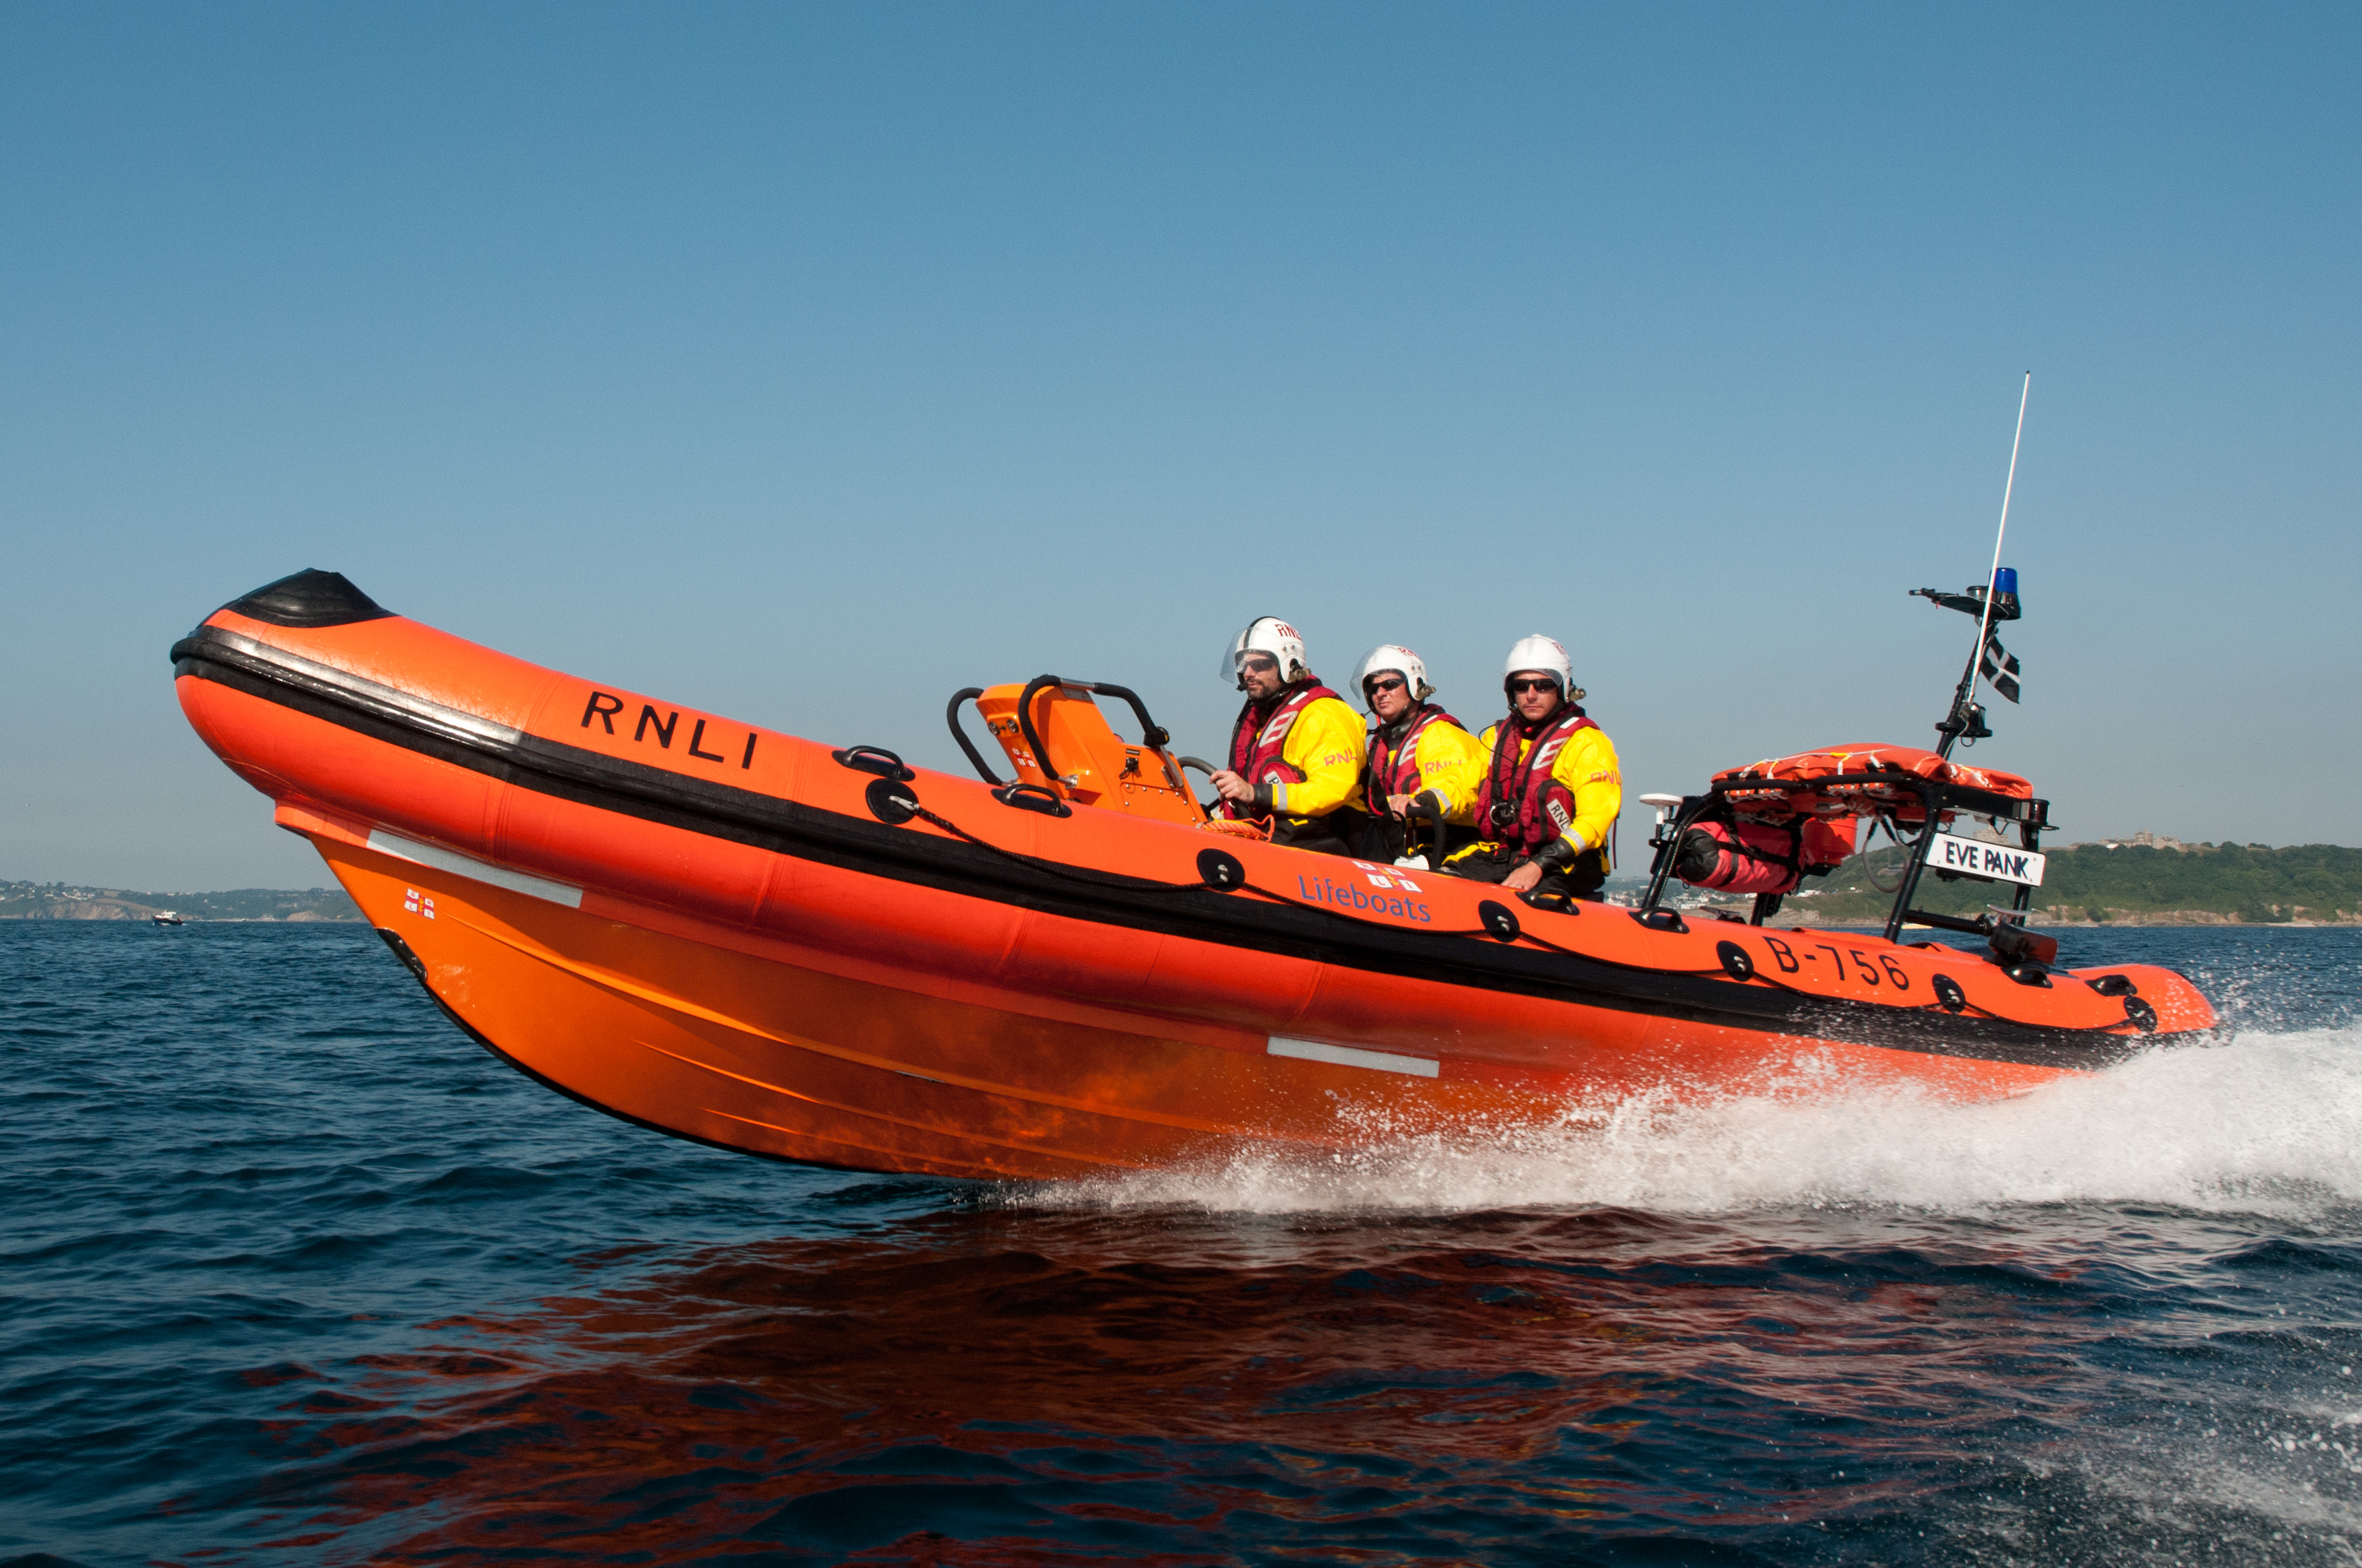 Falmouth's Atlantic 75 inshore lifeboat Eve Pank on exercise in Falmouth Bay earlier in the year